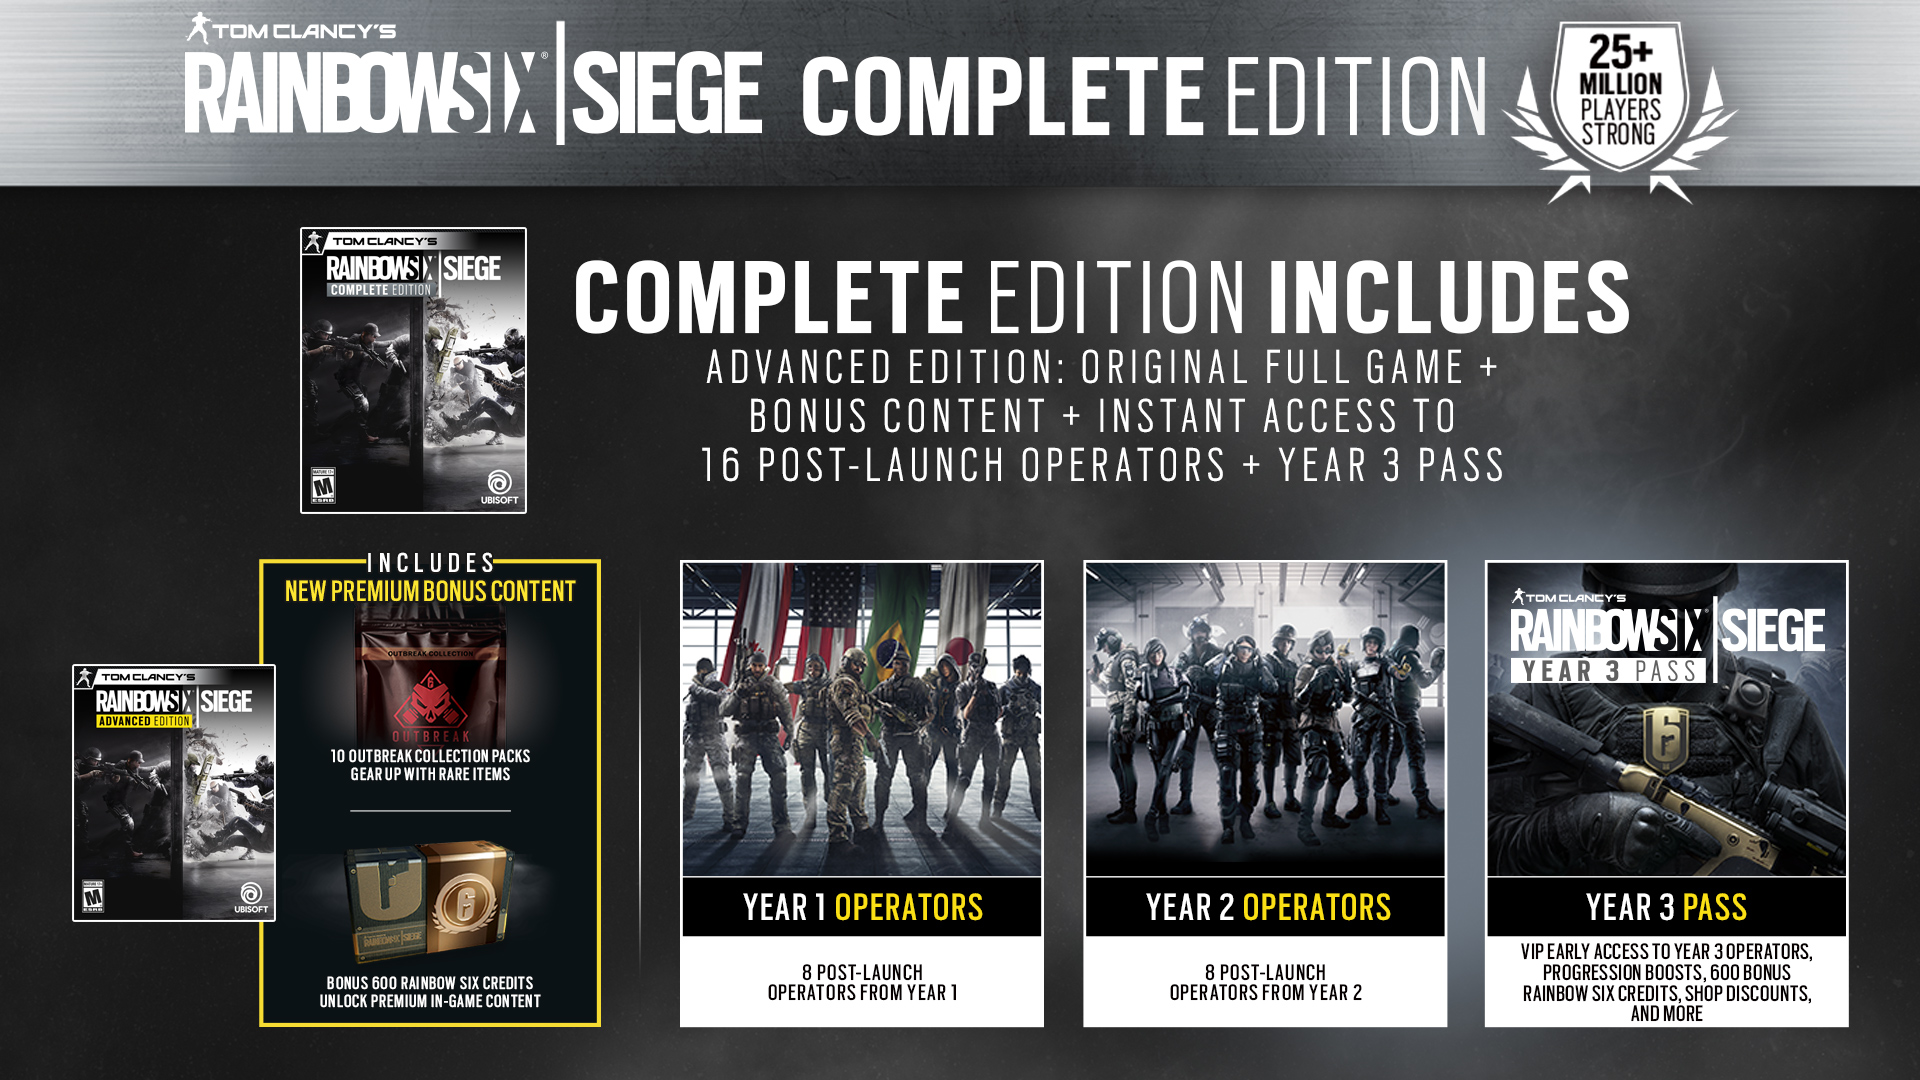 a comprehensive analysis of rainbow six by tom clancy Tom clancy's rainbow six® siege advanced edition includes the original full  game plus rare bonus content: 10 outbreak collection packs (available in-game .